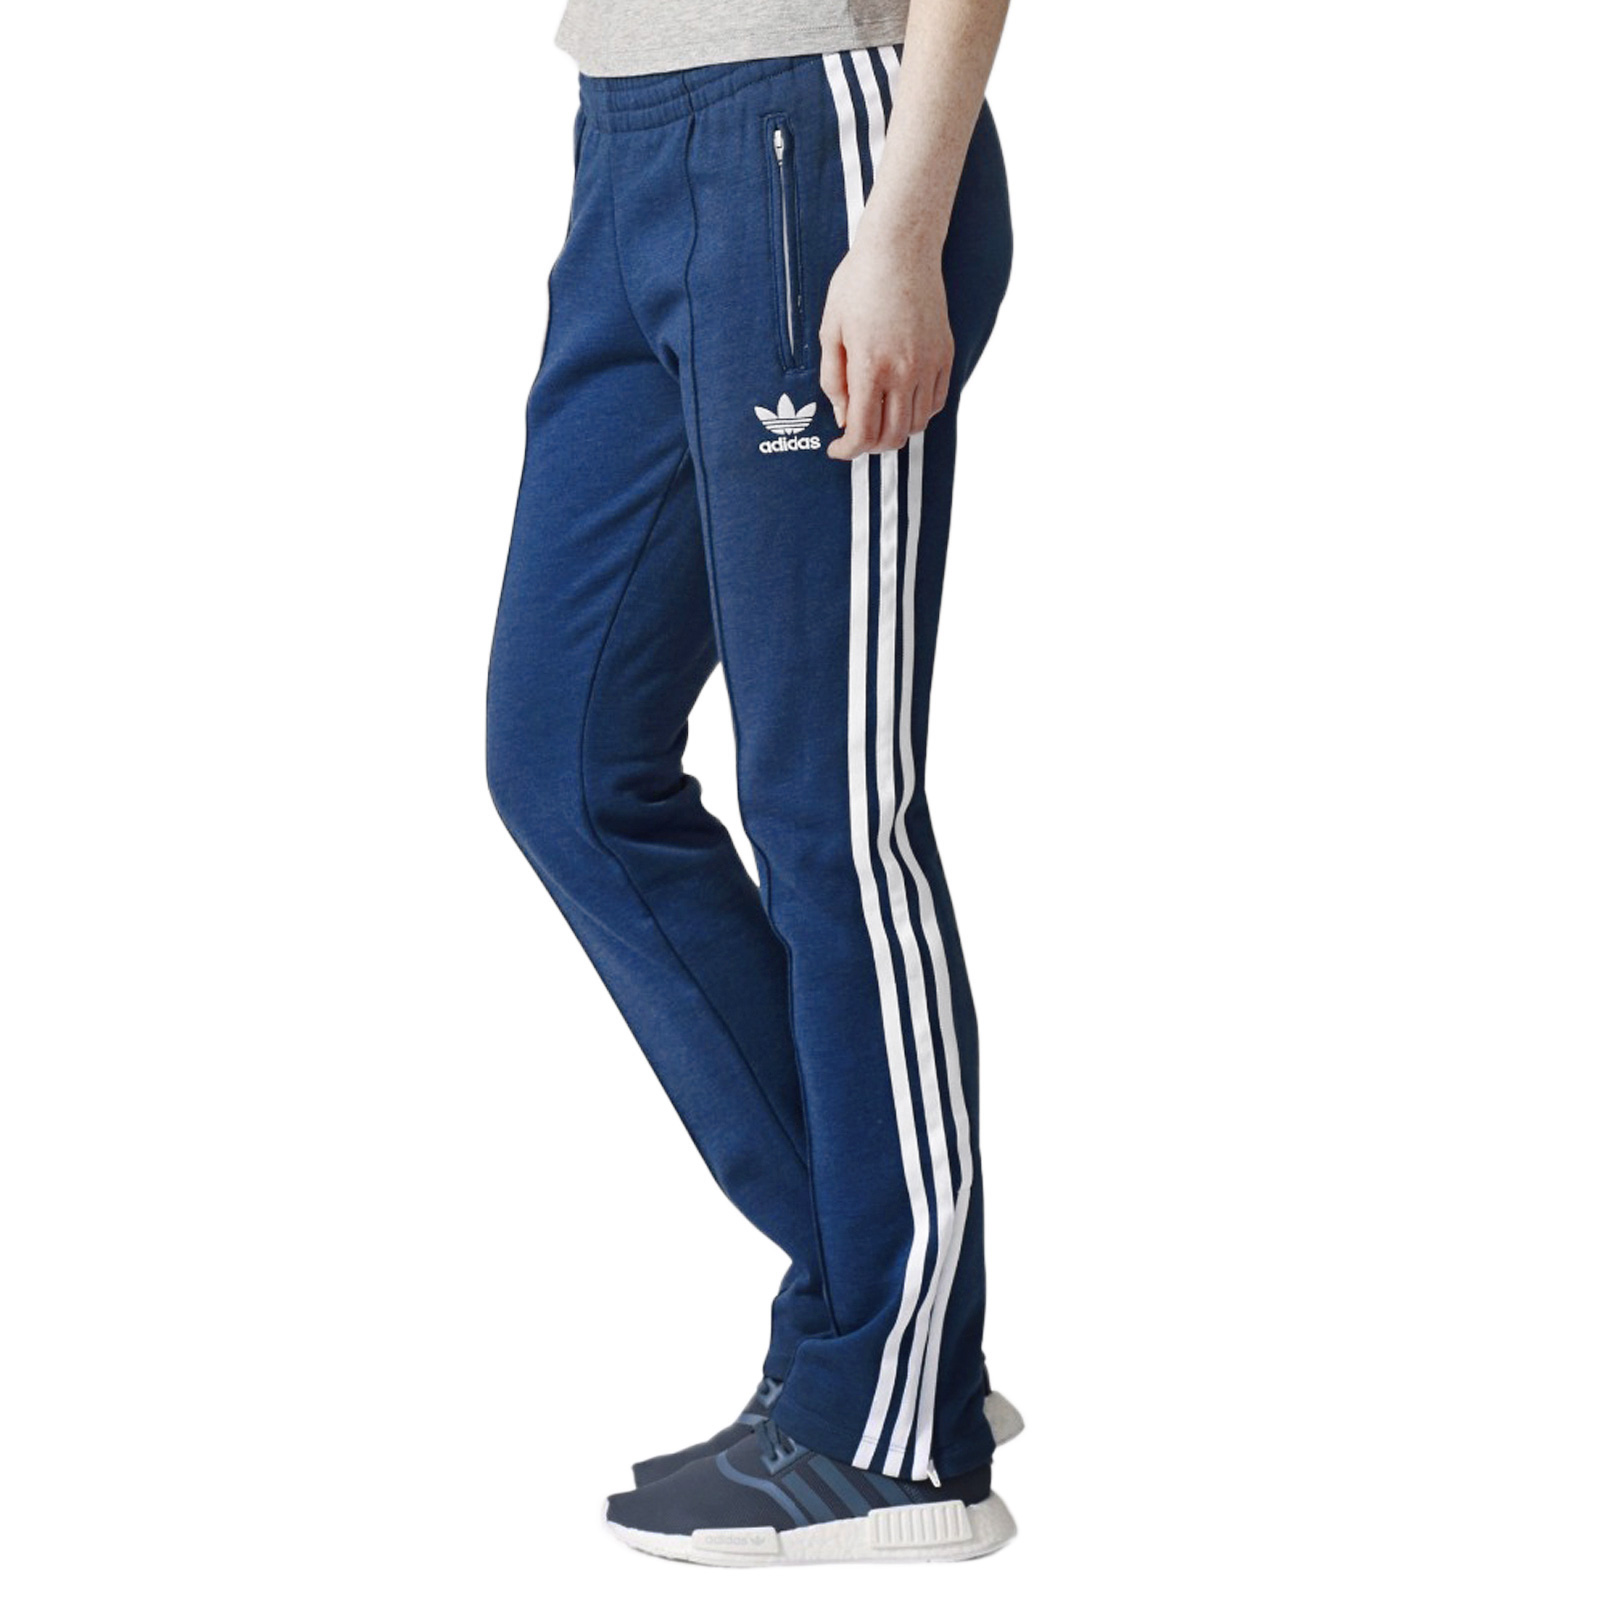 ADIDAS ORIGINALS FIREBIRD TP TRACK PANT DAMEN TRAININGSHOSE ...